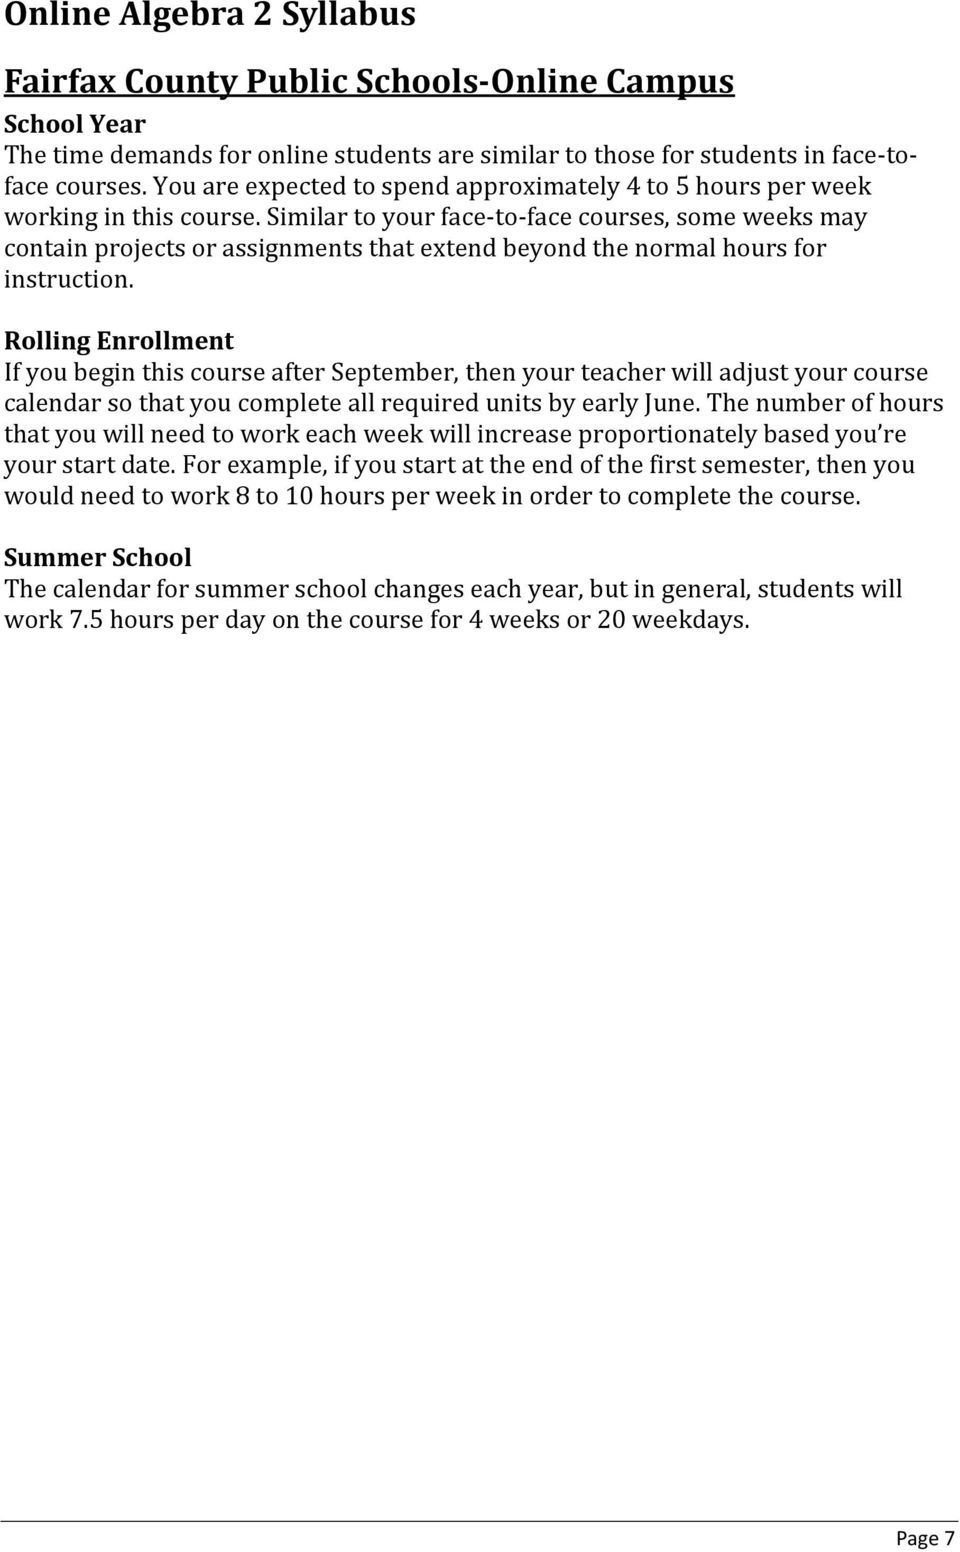 Rolling Enrollment If you begin this course after September, then your teacher will adjust your course calendar so that you complete all required units by early June.